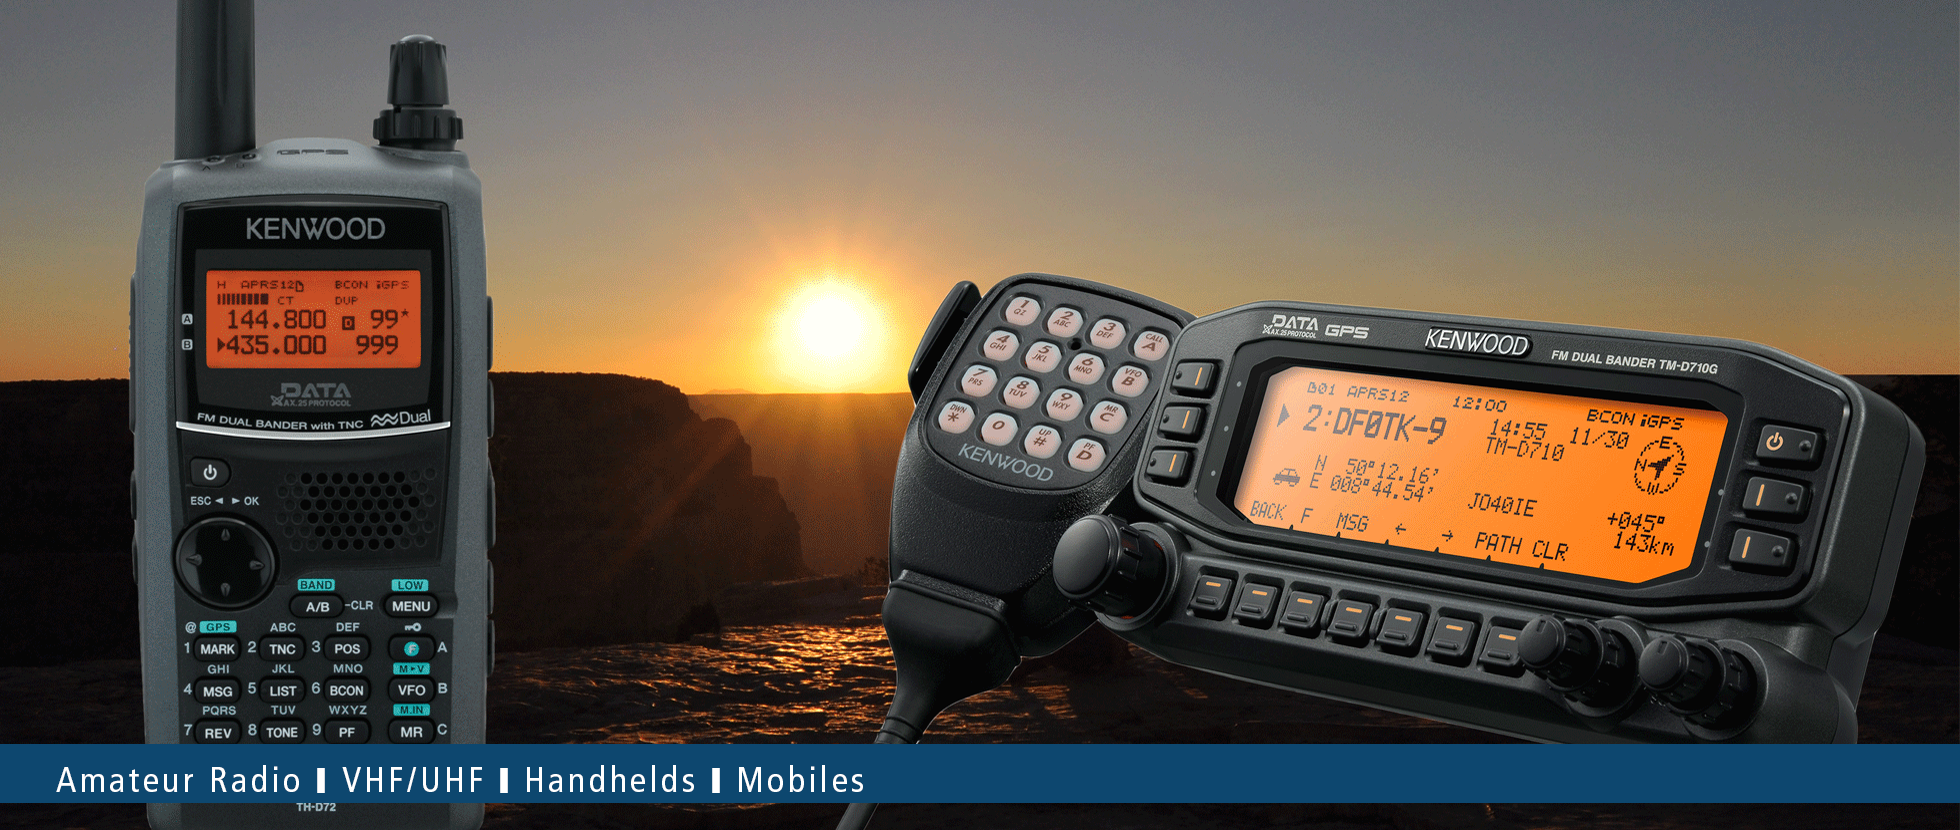 VHF/UHF Amateur Radios • Kenwood Comms